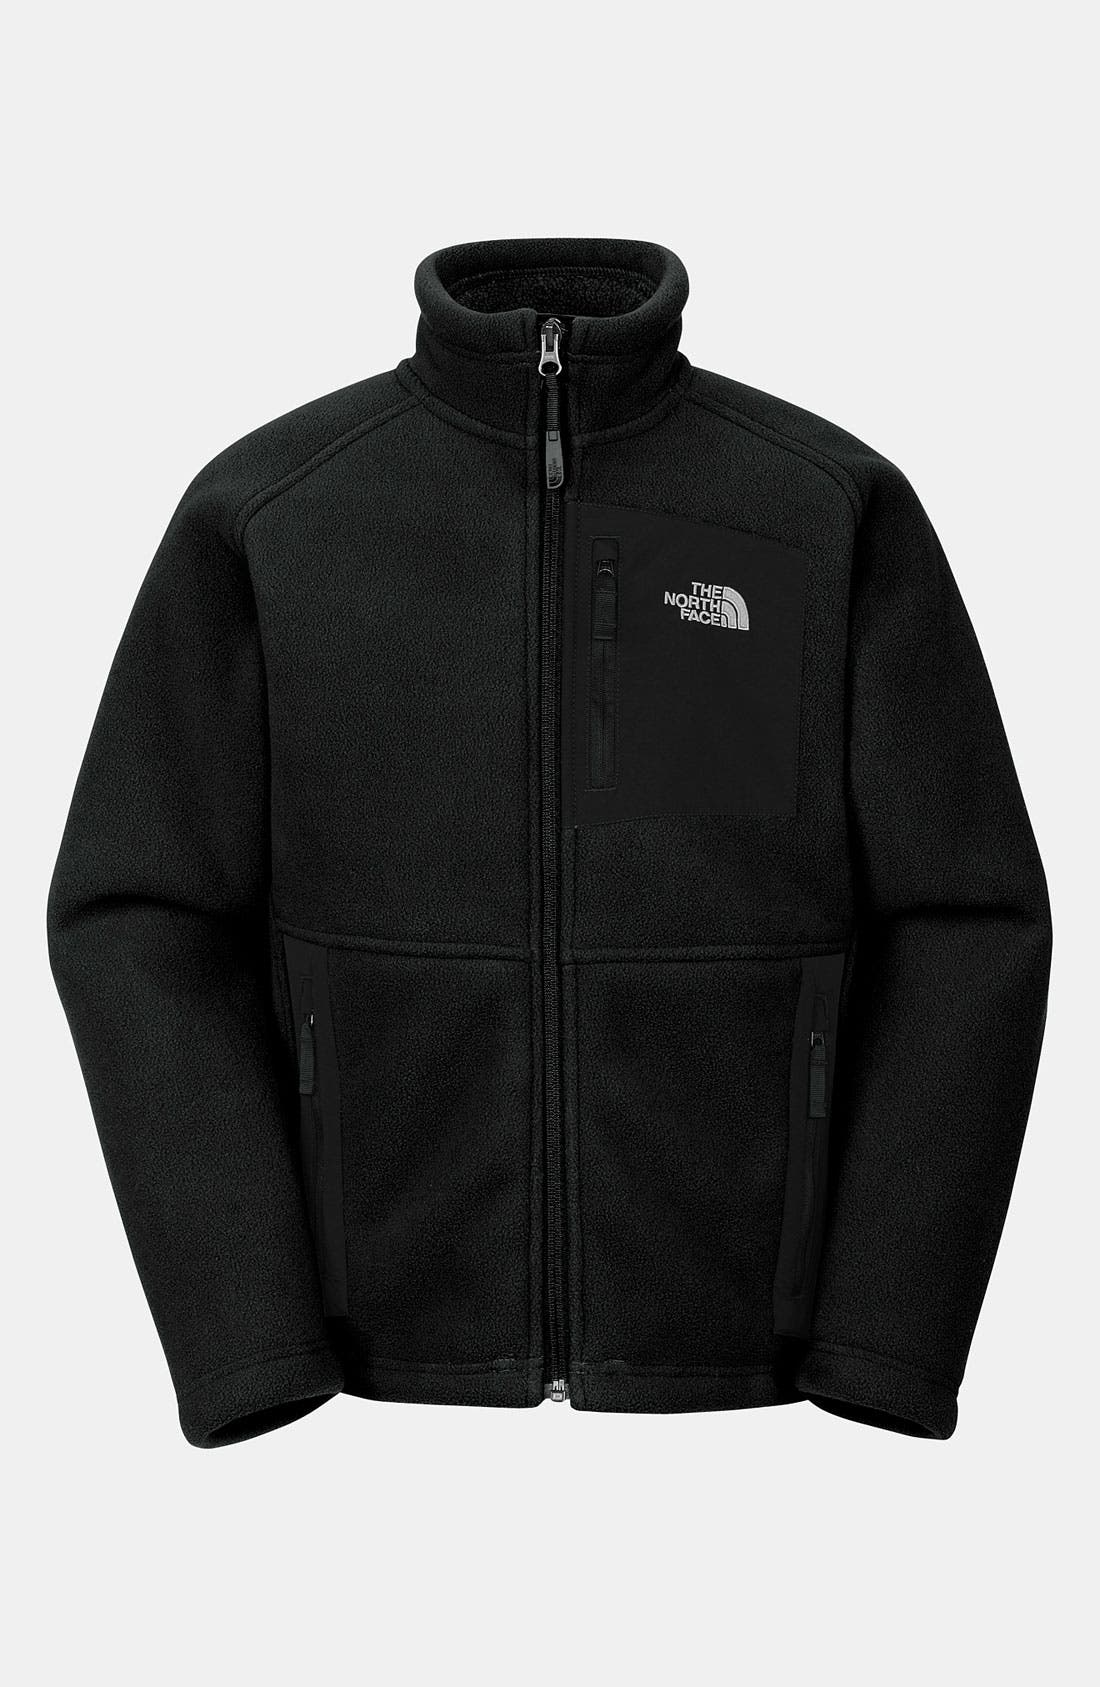 Main Image - The North Face 'Hetchy' Fleece Jacket (Big Boys)